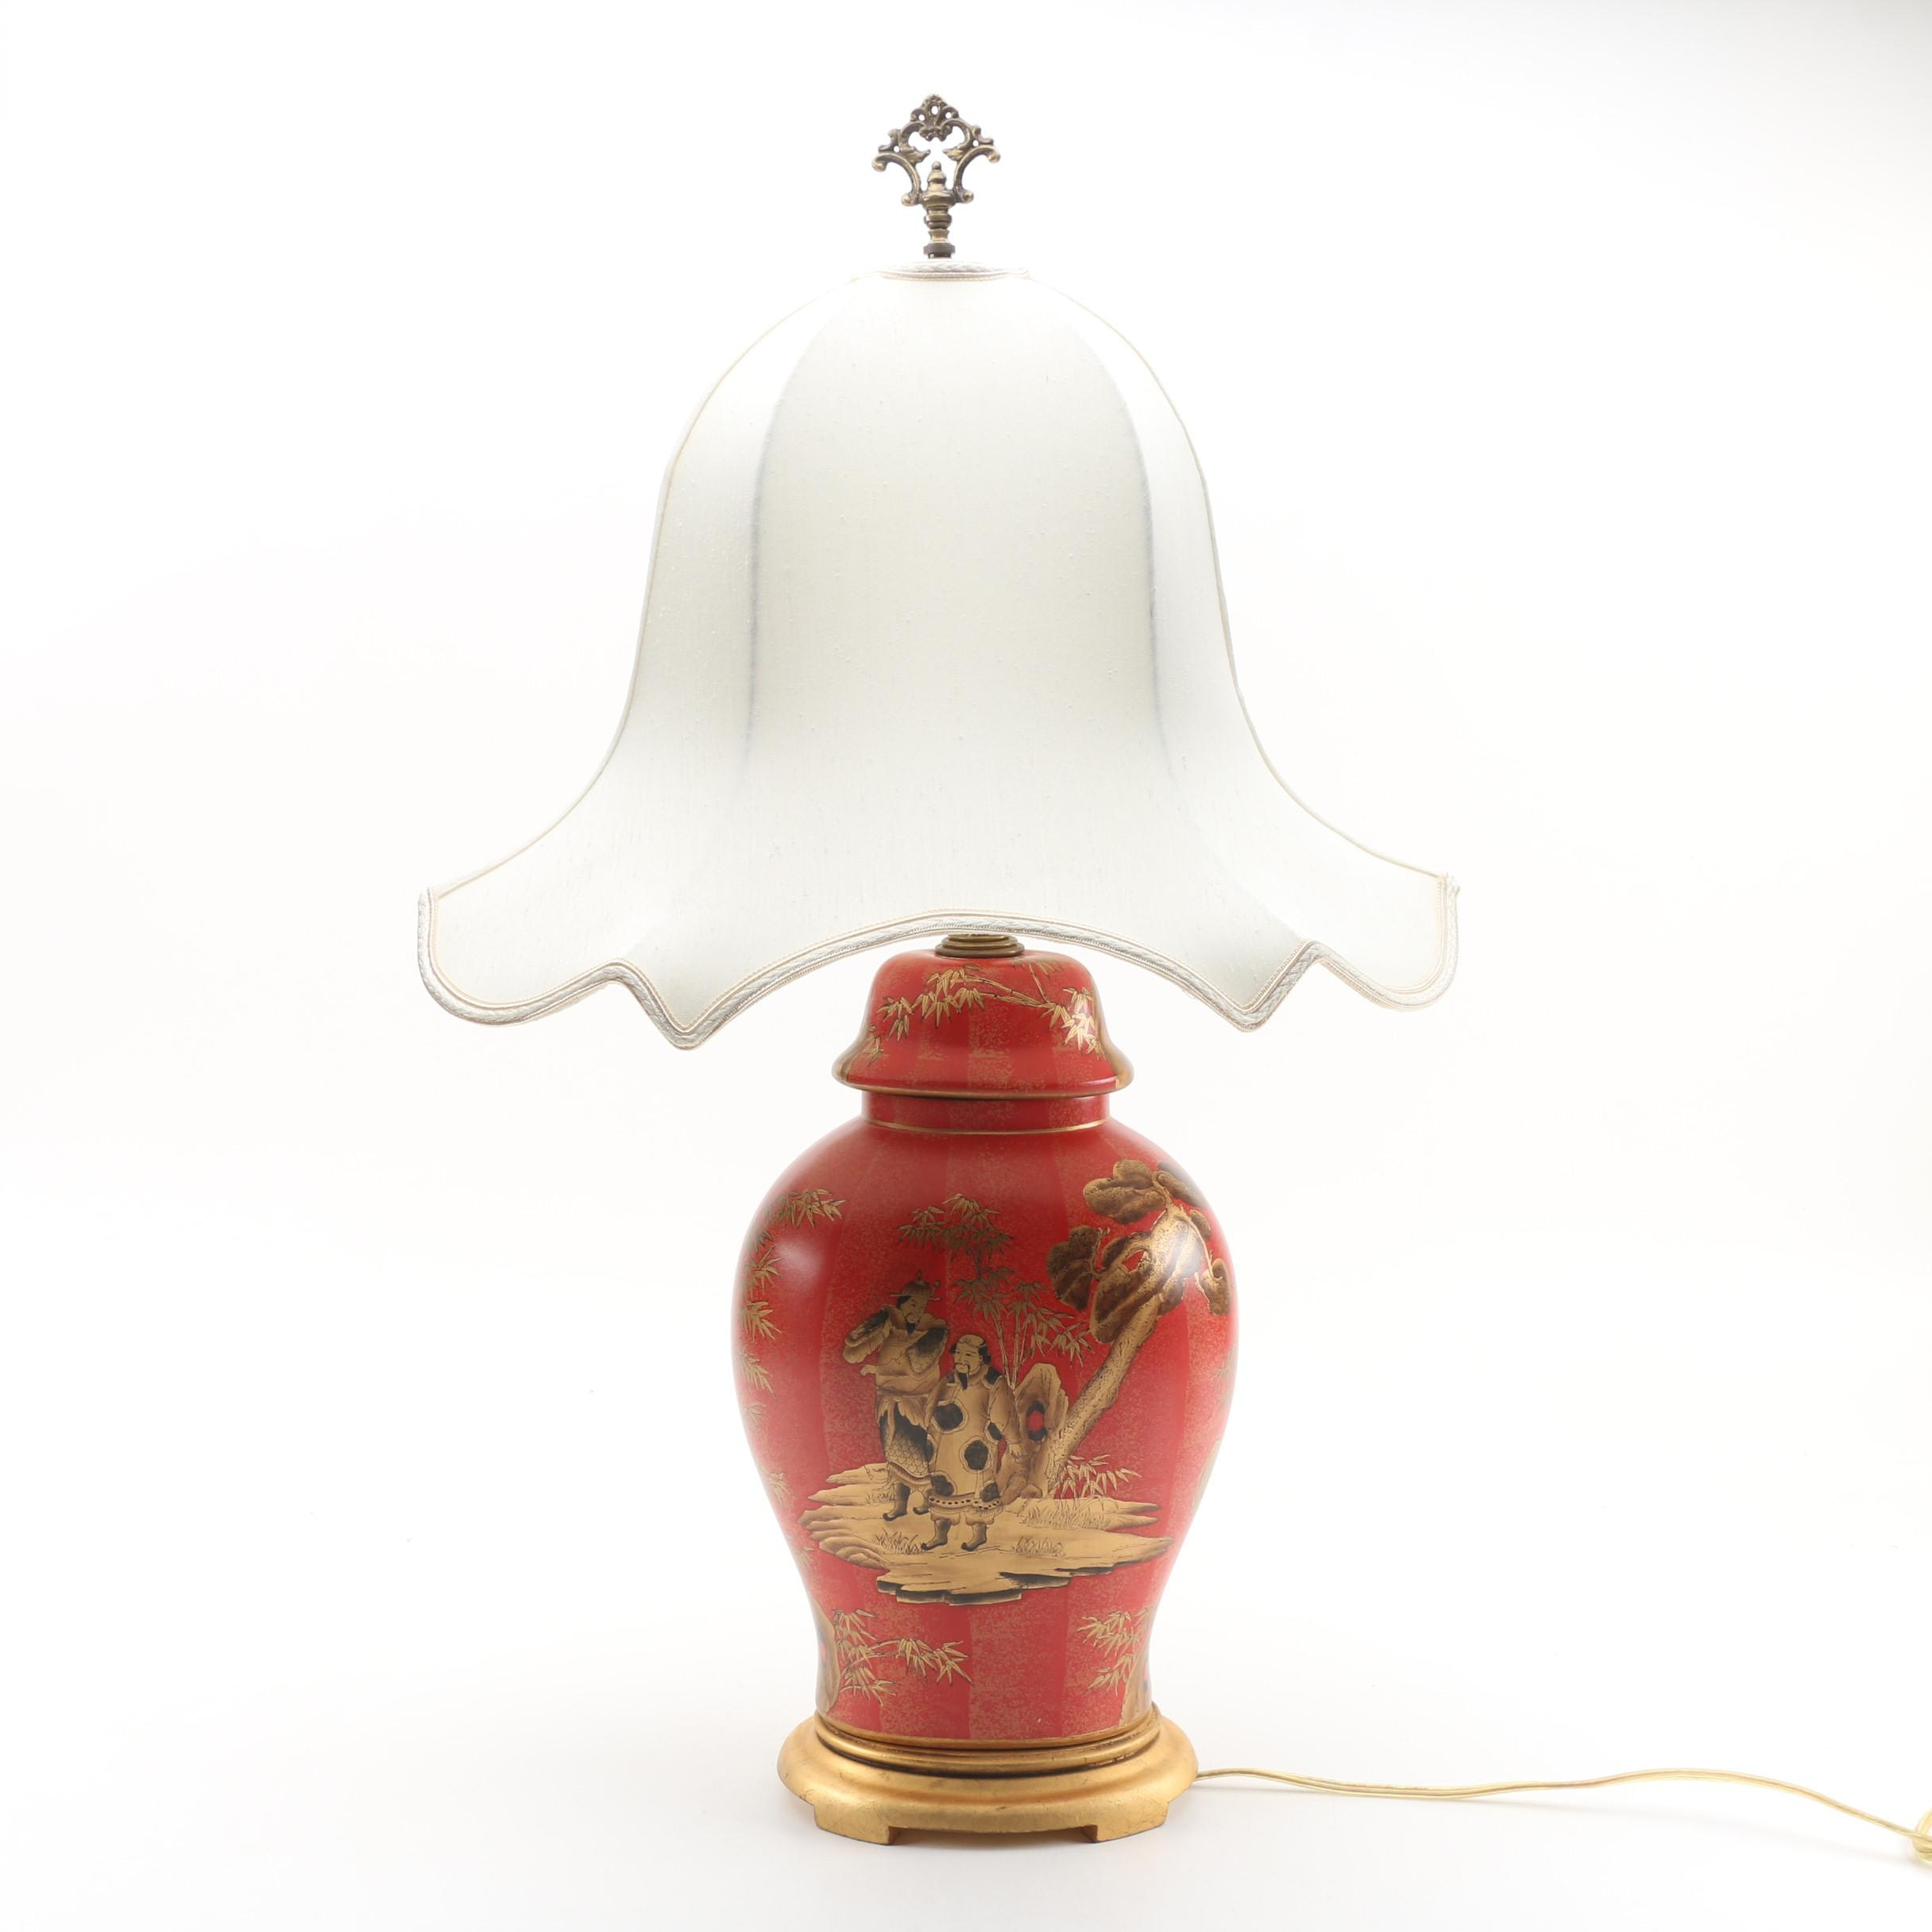 East Asian Style Ceramic Table Lamp with Shade